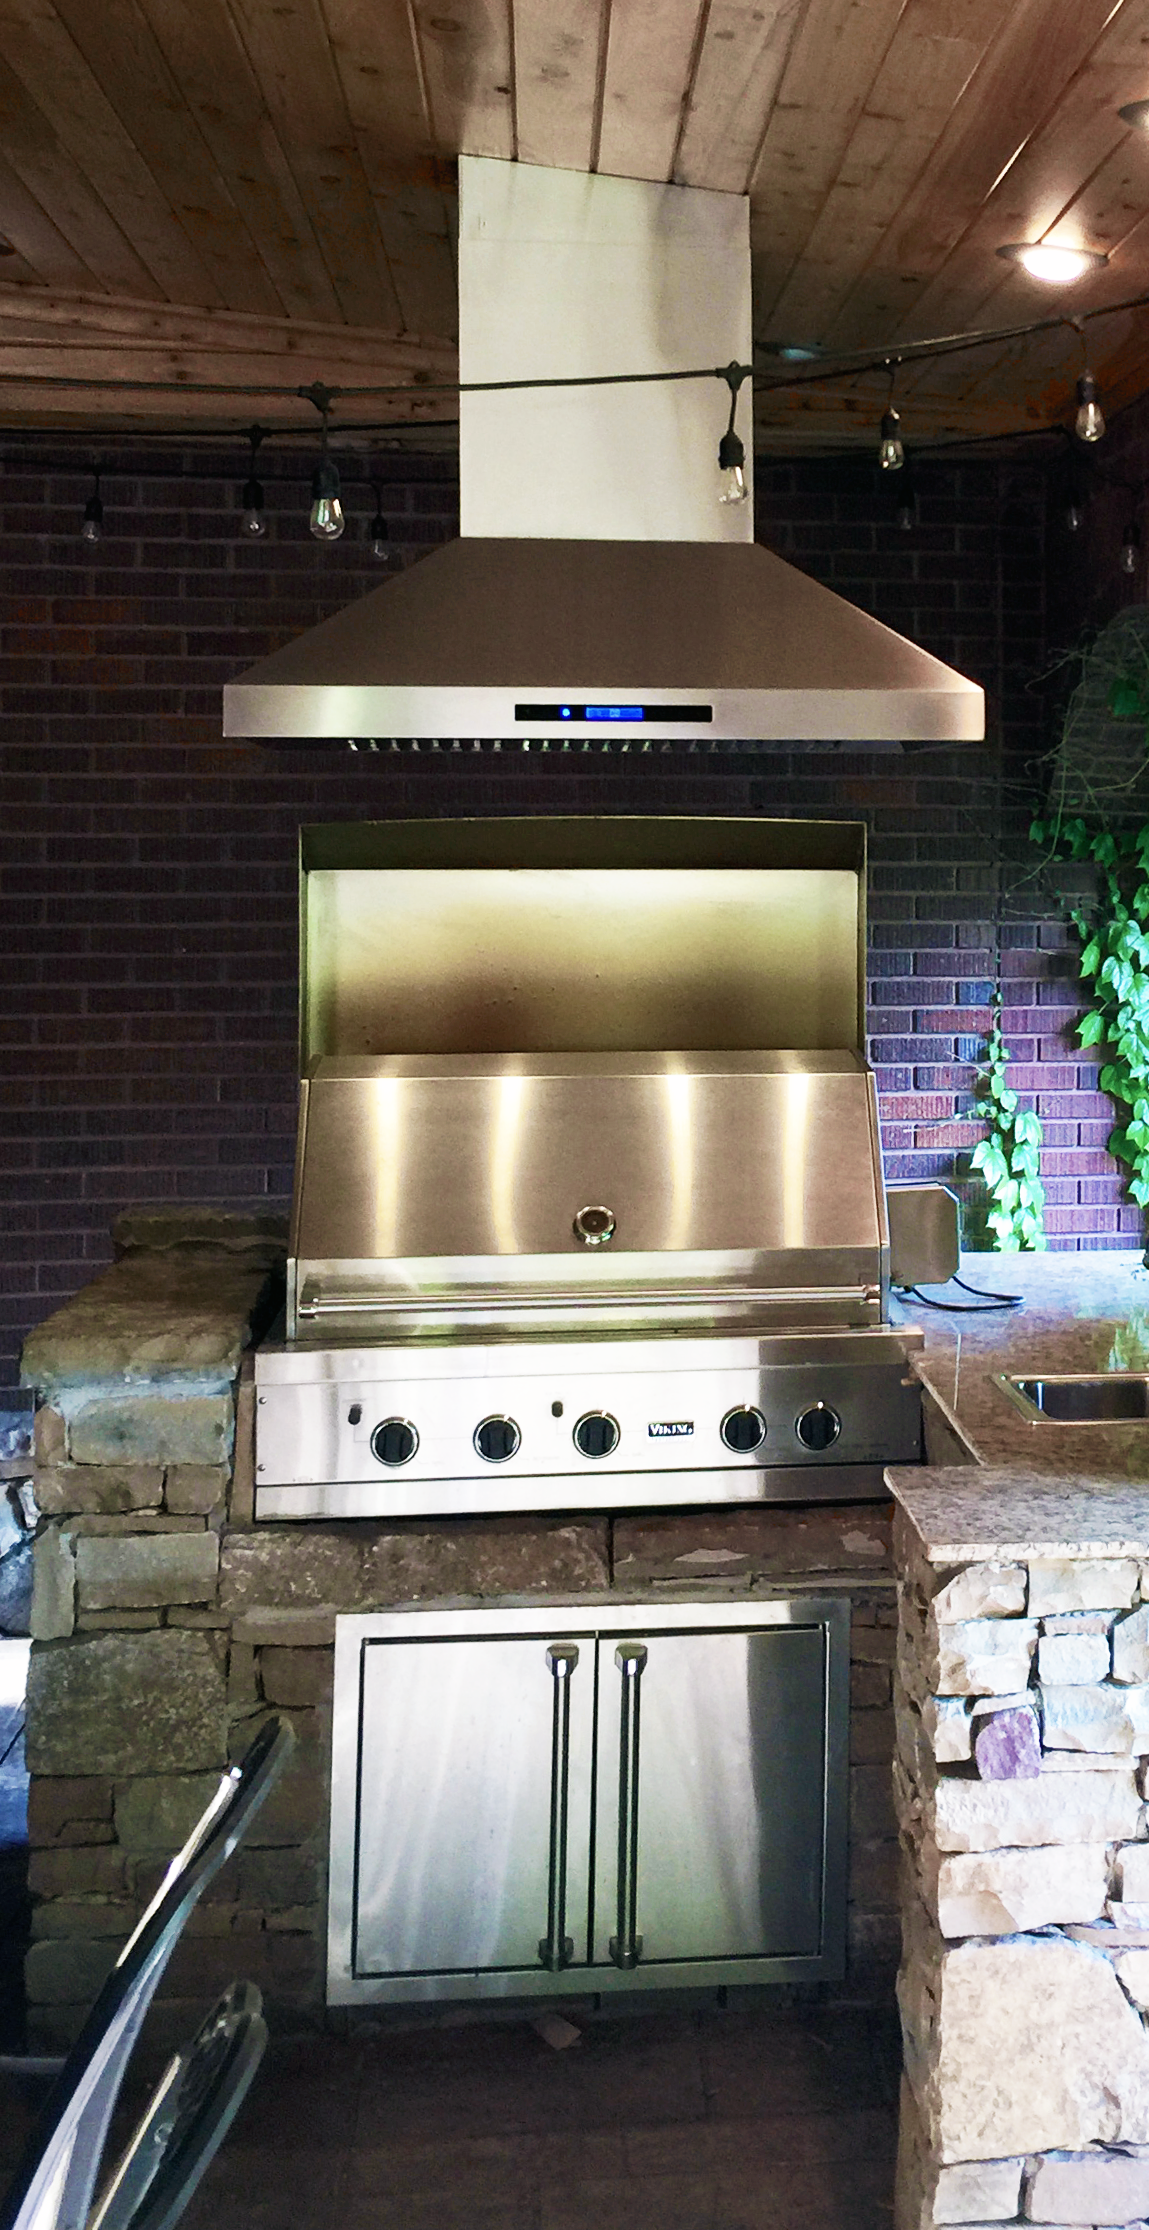 Outdoor Kitchen Featuring The Powerful And Beautiful Stainless Steel Pros Island Range Hood F Outdoor Kitchen Design Kitchen Backsplash Designs Outdoor Kitchen